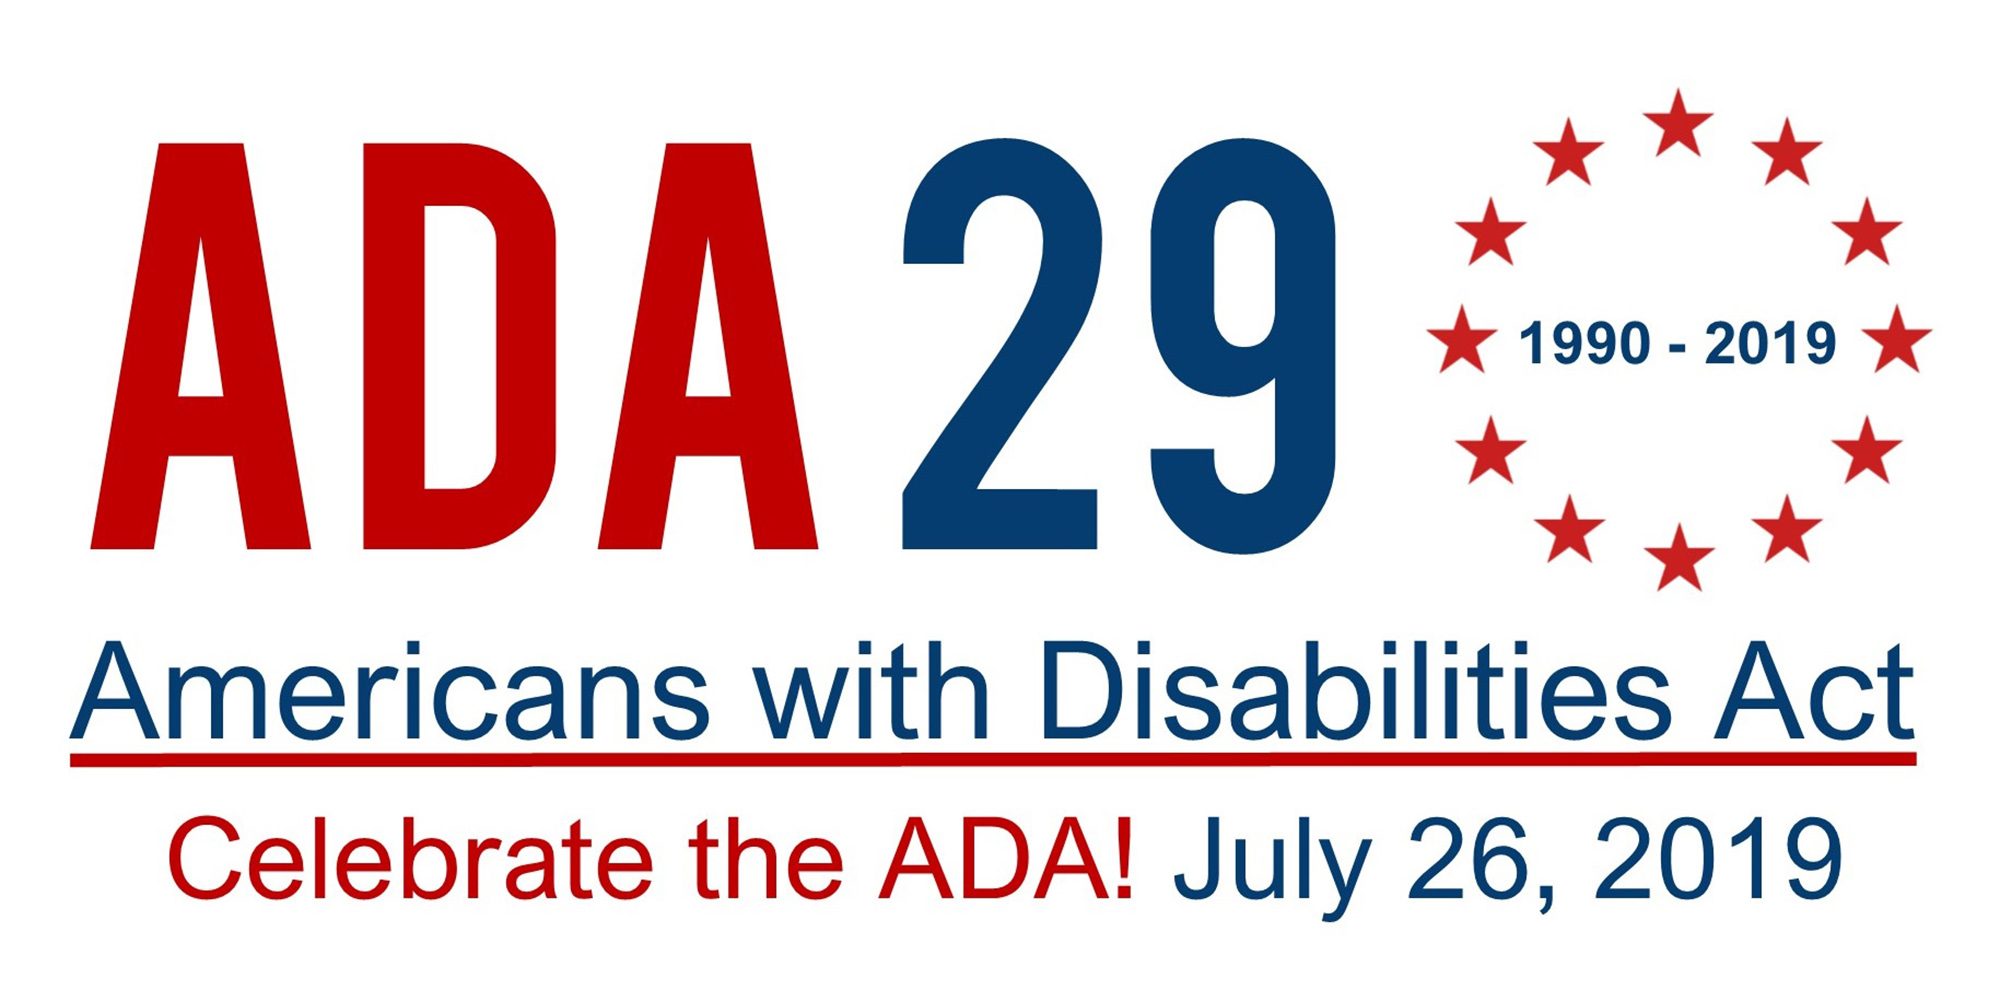 The Americans with Disabilities Act: 29 Years of Progress (UPDATED 2019)